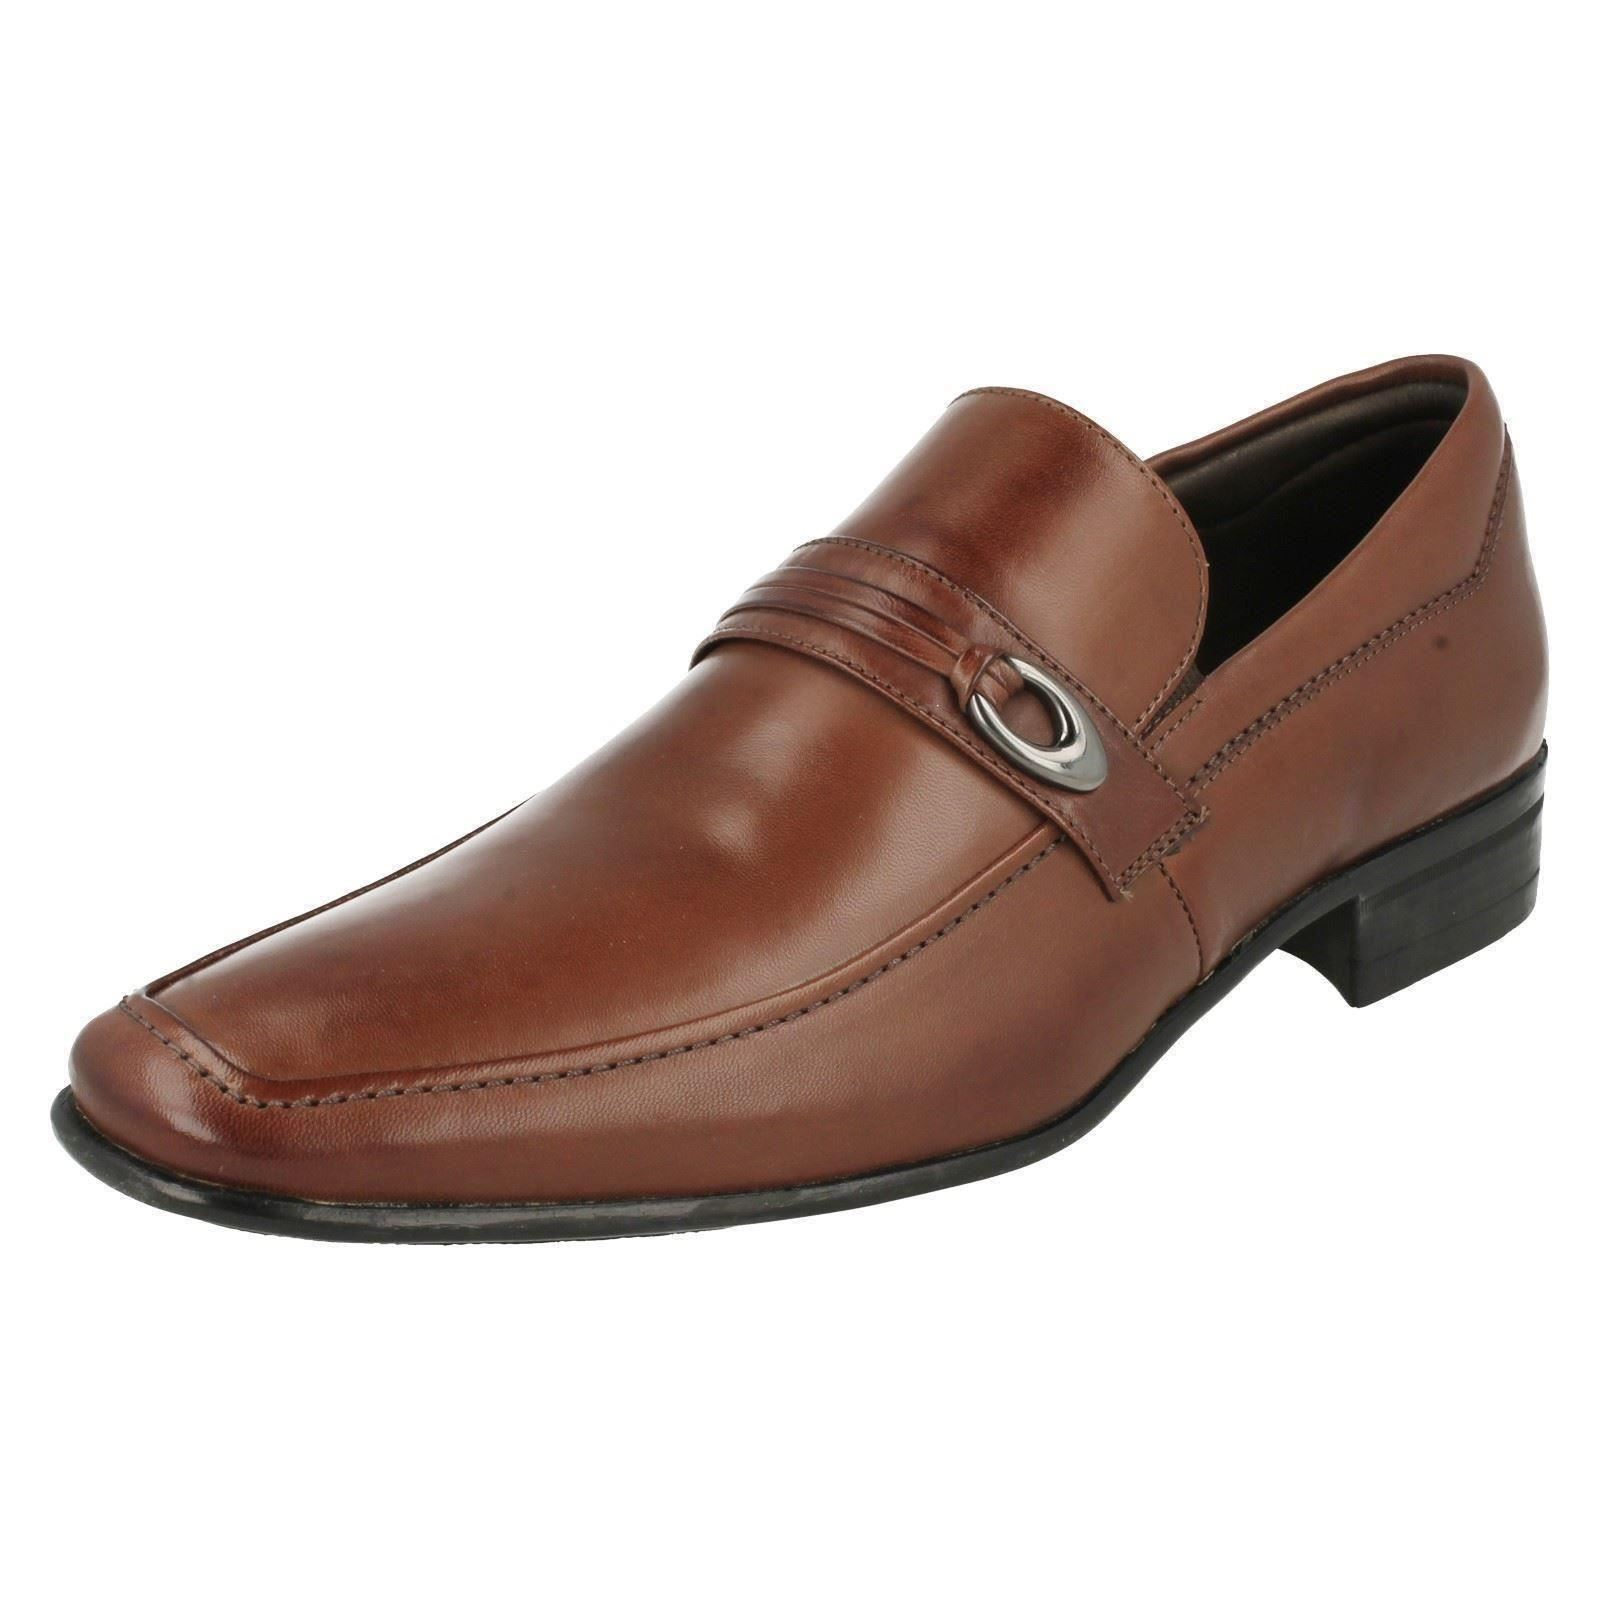 Mens Anatomic Goiania Prime Smart Dress Schuhes Goiania Anatomic af0c2e